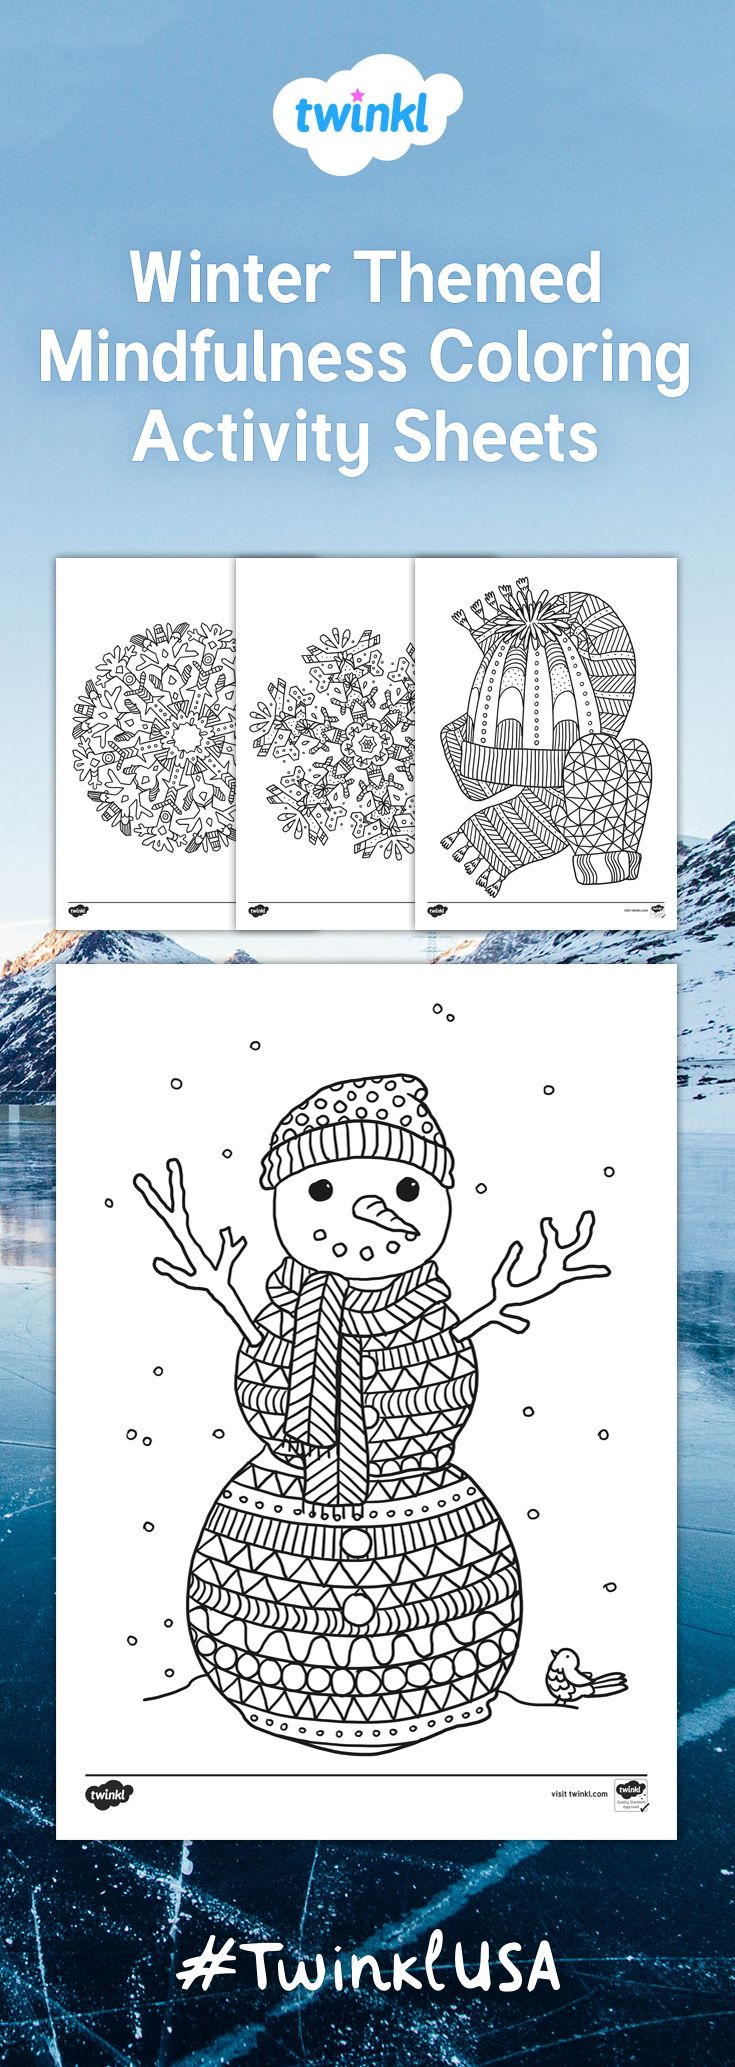 This beautiful set of coloring sheets features a selection of different images all related to the winter season. Great for a variety of activities for children and adults alike - you can use them to reinforce fine motor skills, as inspiration for independent writing, or just for art fun!